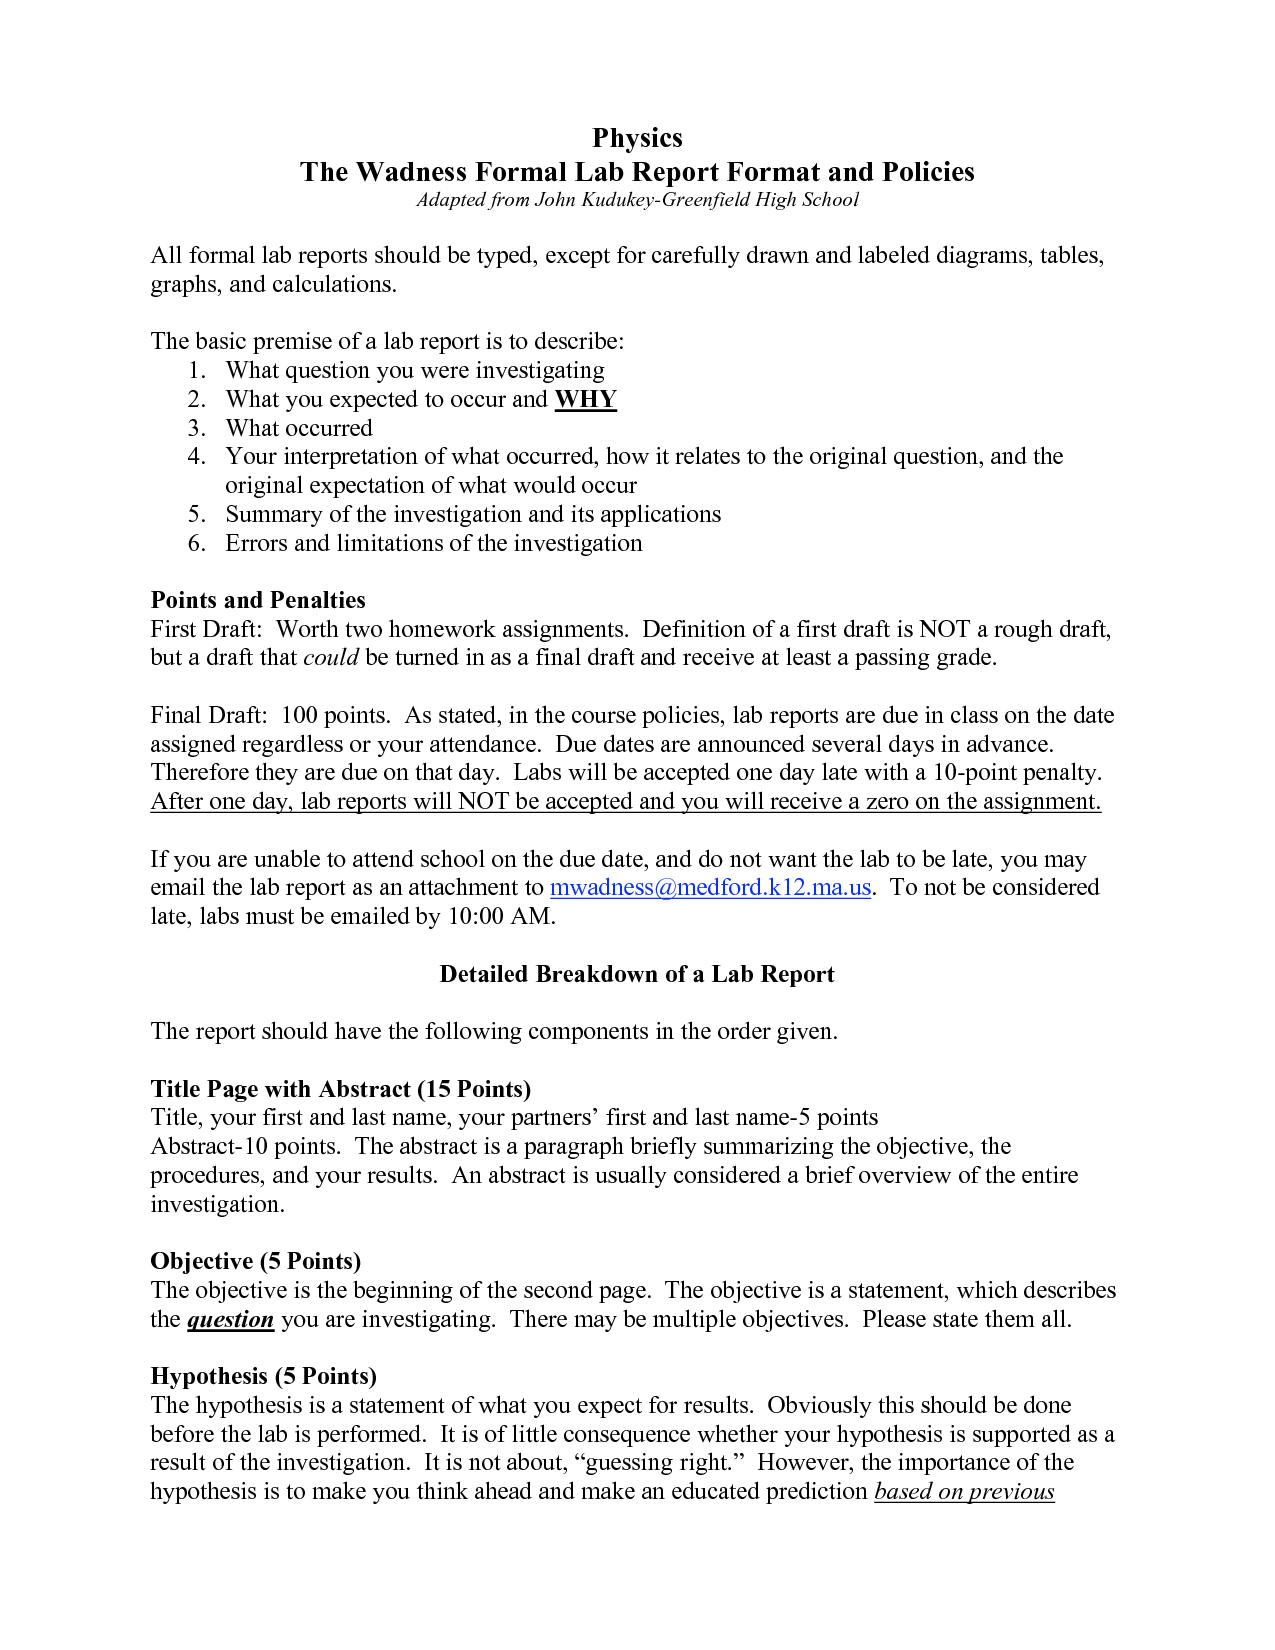 lab report template – Formal Report Template Word